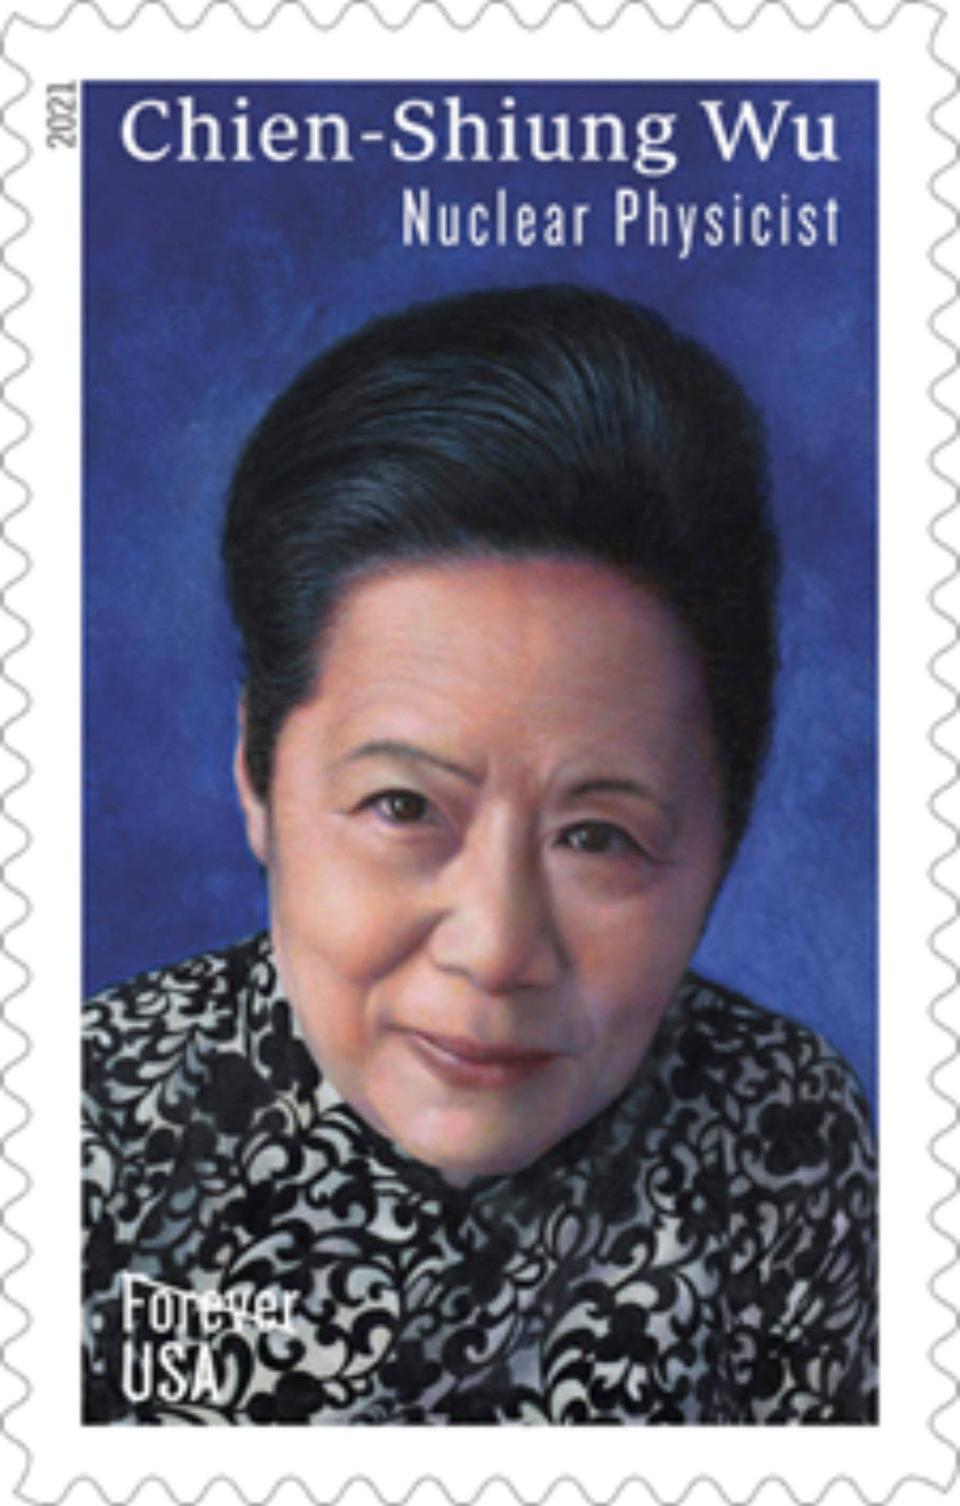 Chien-Shiung Wu, one of the greatest experimental physicists in history.